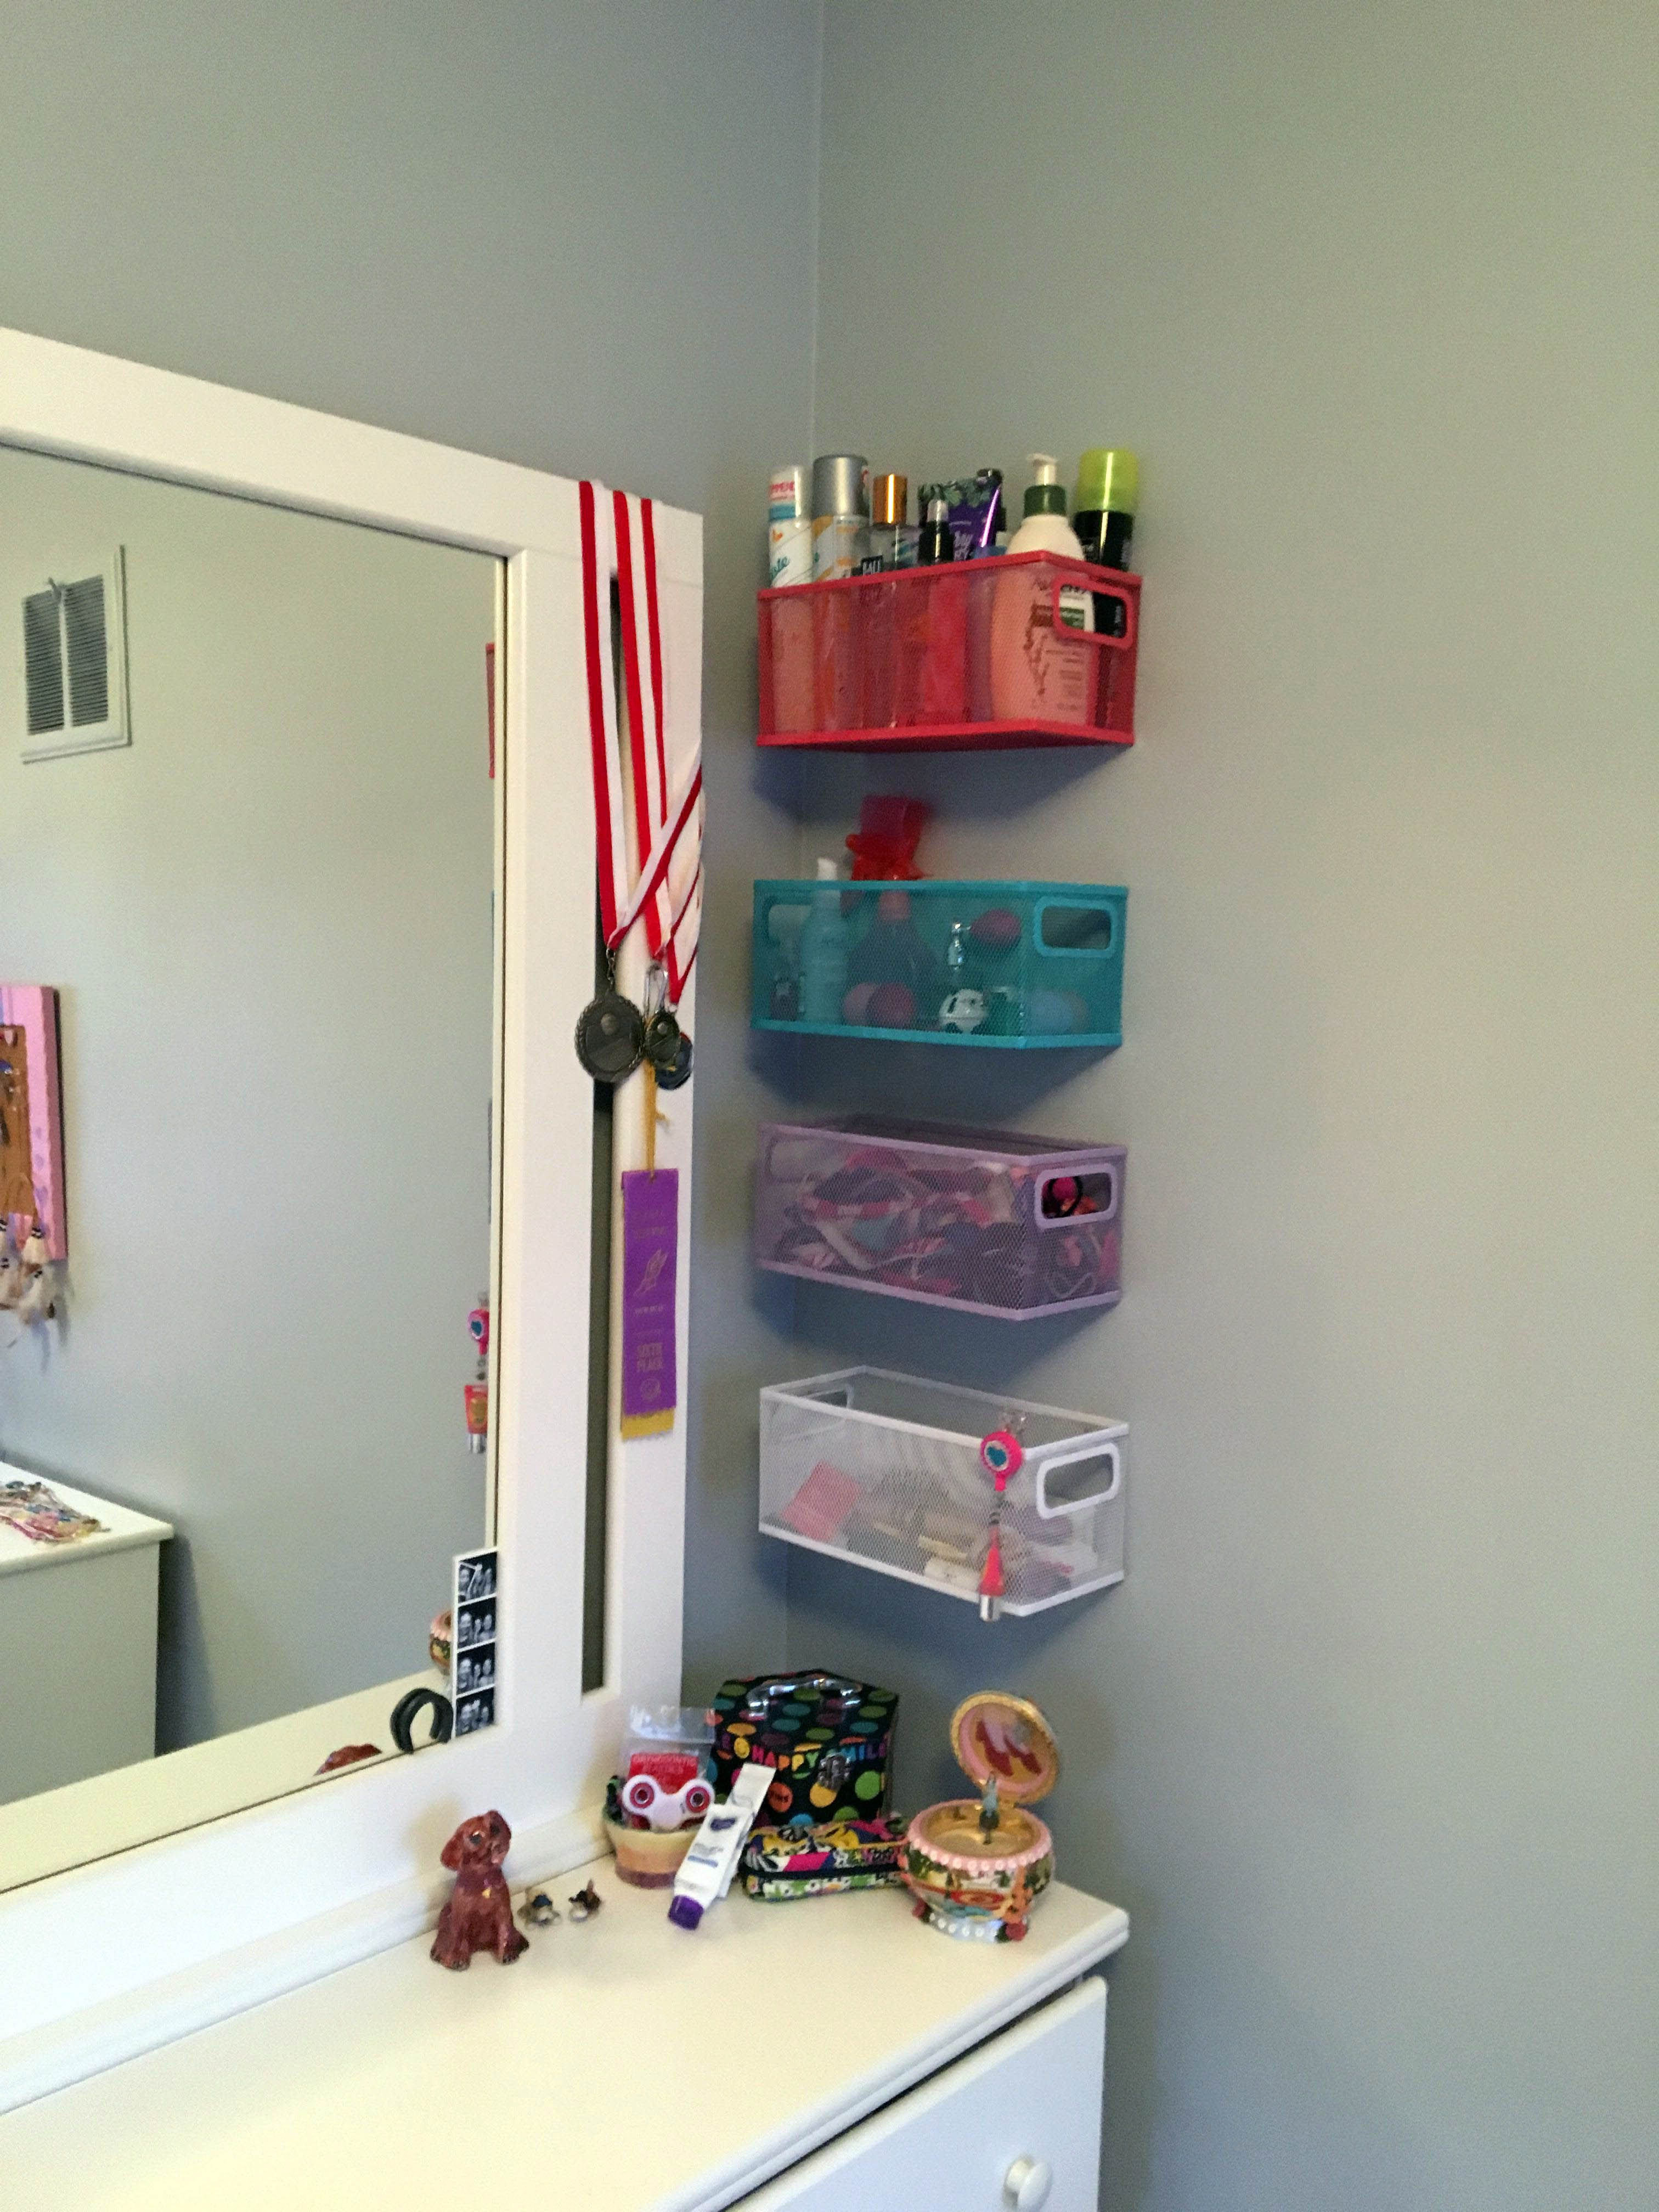 Best Bathroom Storage Walmart One And Only Indoneso.com